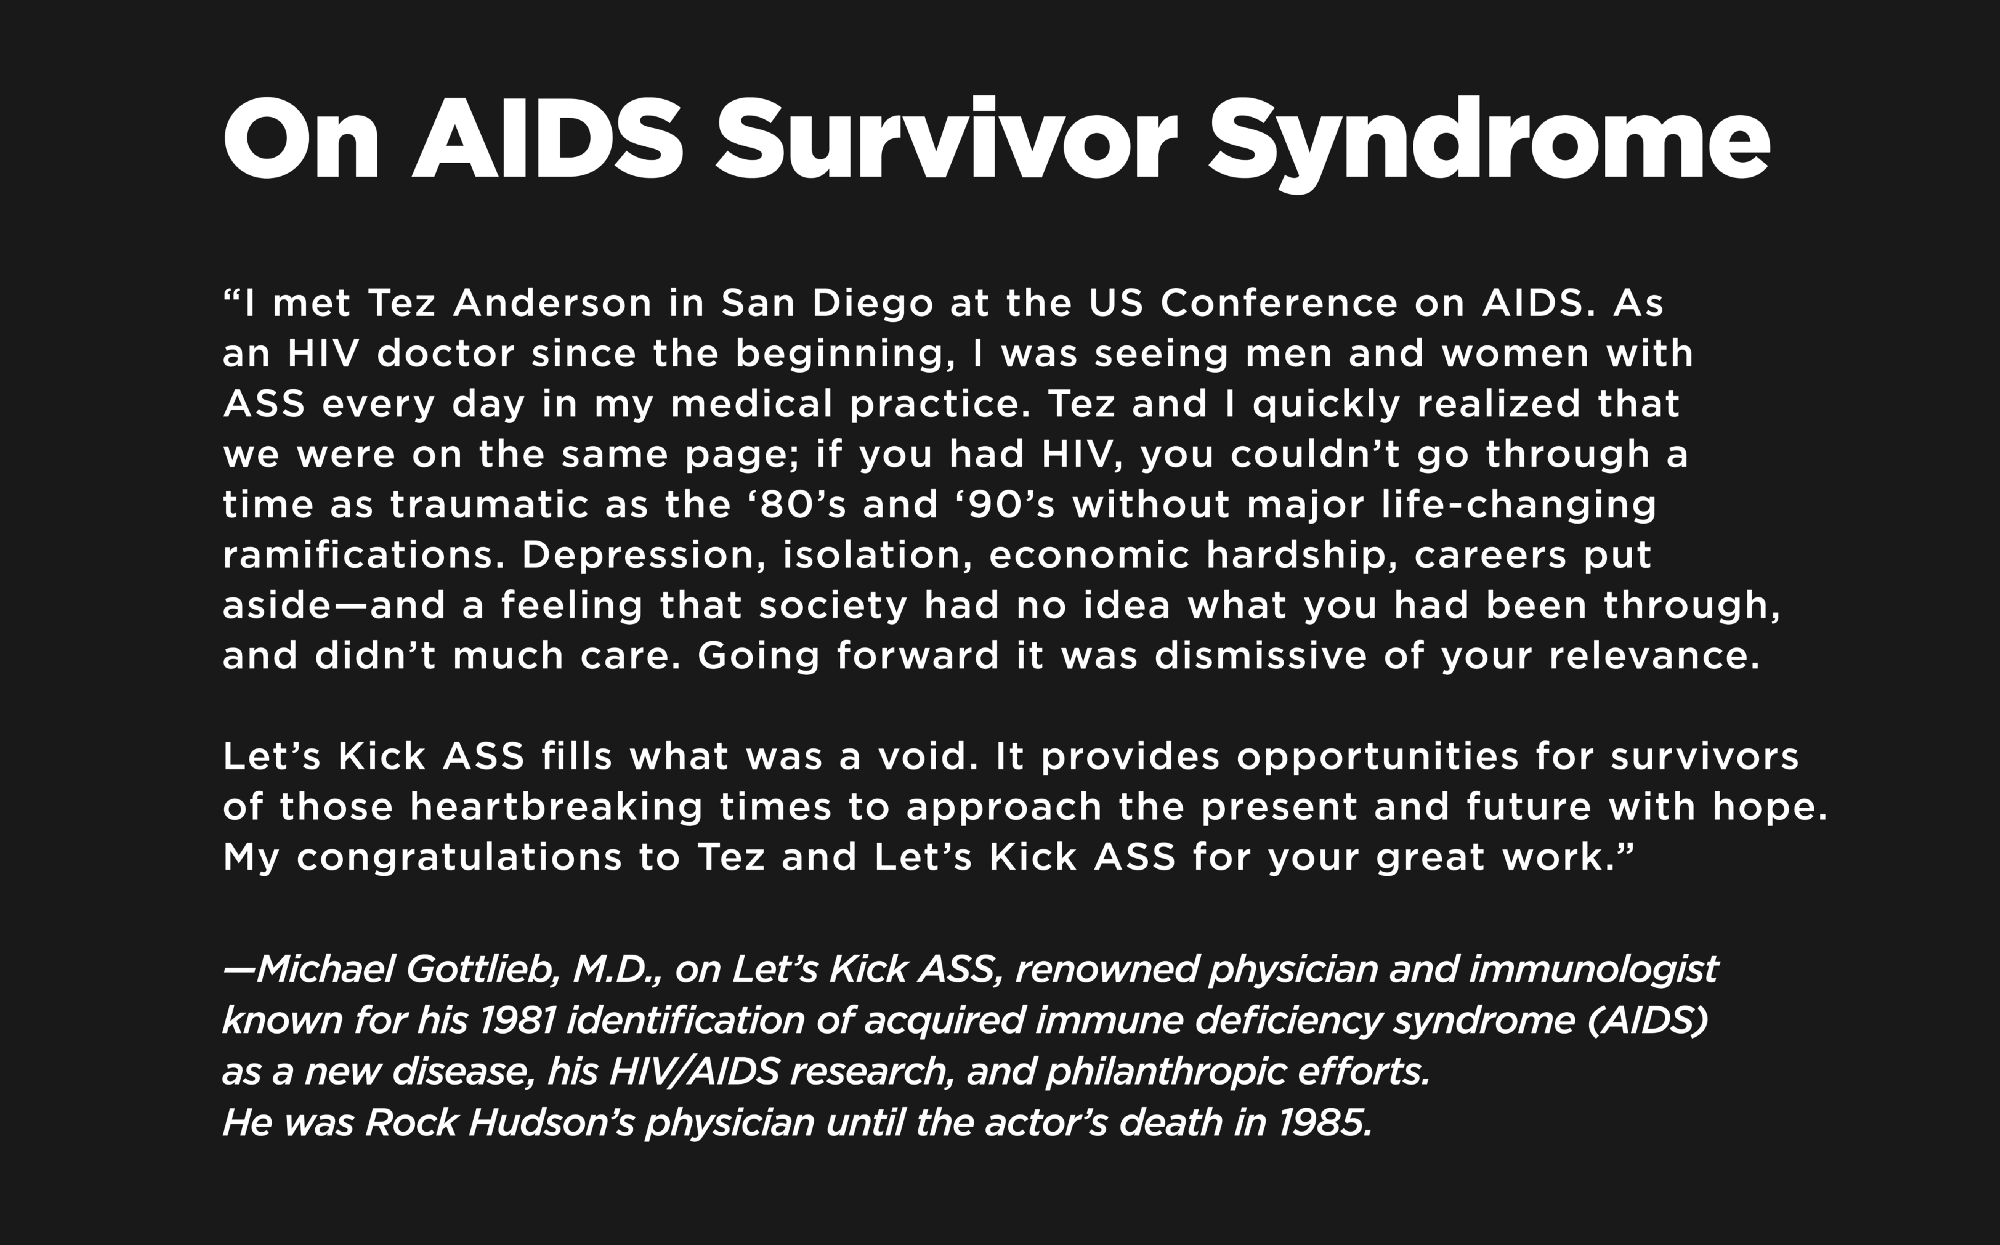 essay on what is aids Hiv/aids research includes all medical research which attempts to prevent, treat, or cure hiv/aids along with fundamental research about the nature of hiv as an infectious agent and aids as the disease caused by hiv many governments and research institutions participate in hiv/aids research.